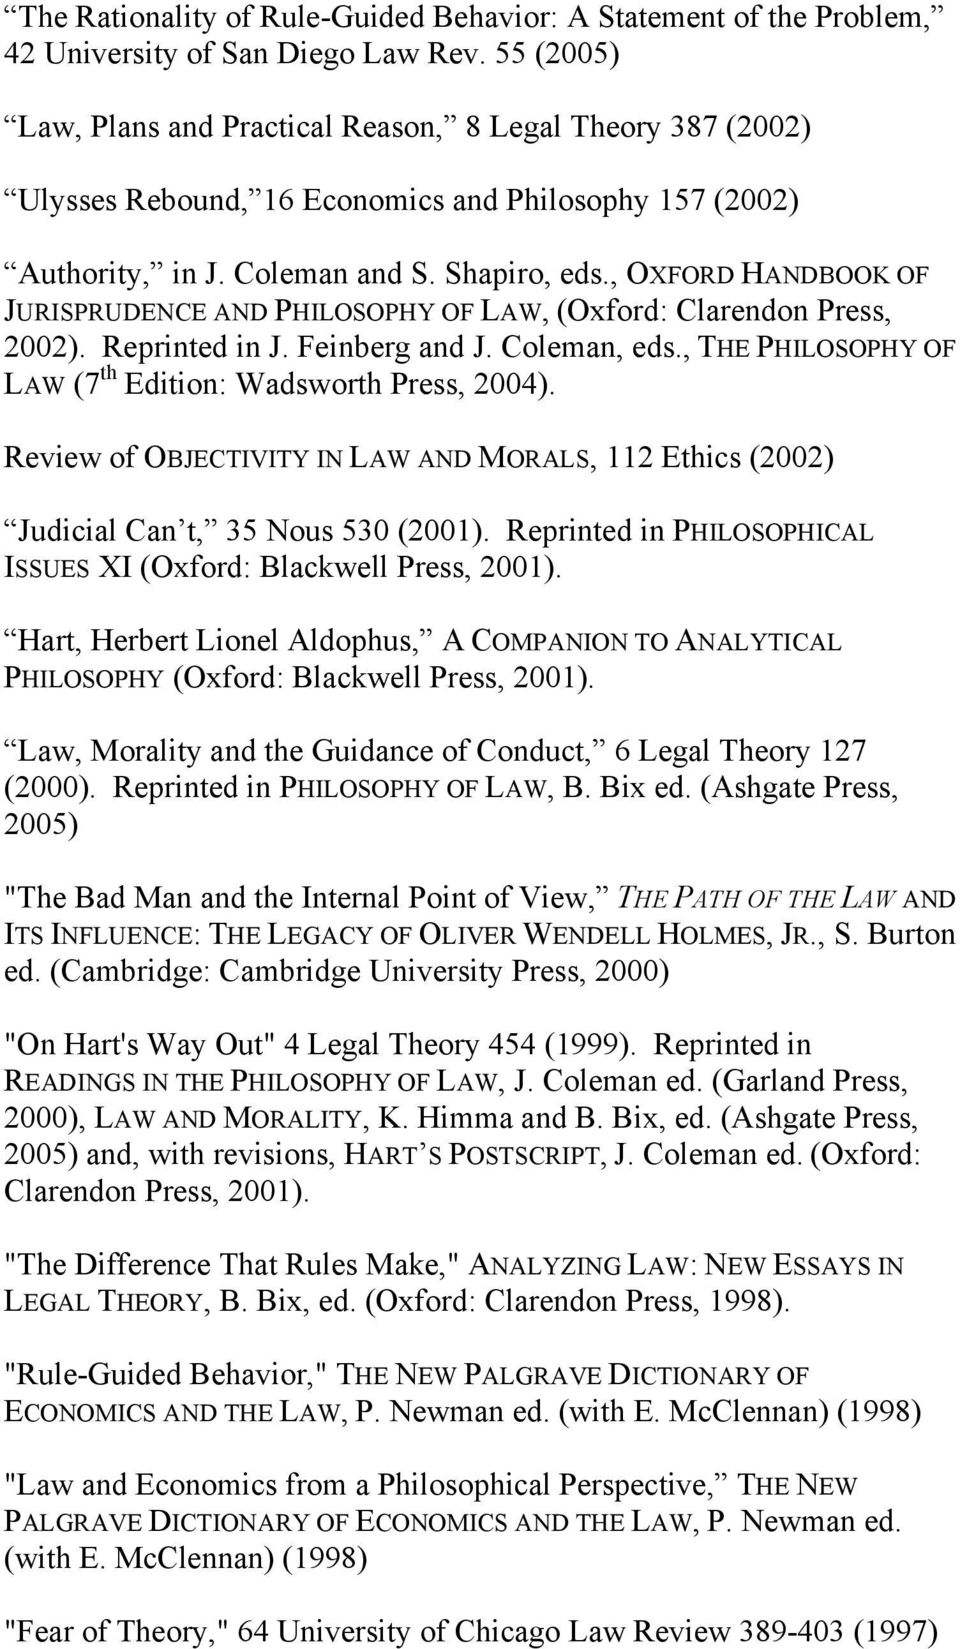 , OXFORD HANDBOOK OF JURISPRUDENCE AND PHILOSOPHY OF LAW, (Oxford: Clarendon Press, 2002). Reprinted in J. Feinberg and J. Coleman, eds., THE PHILOSOPHY OF LAW (7 th Edition: Wadsworth Press, 2004).